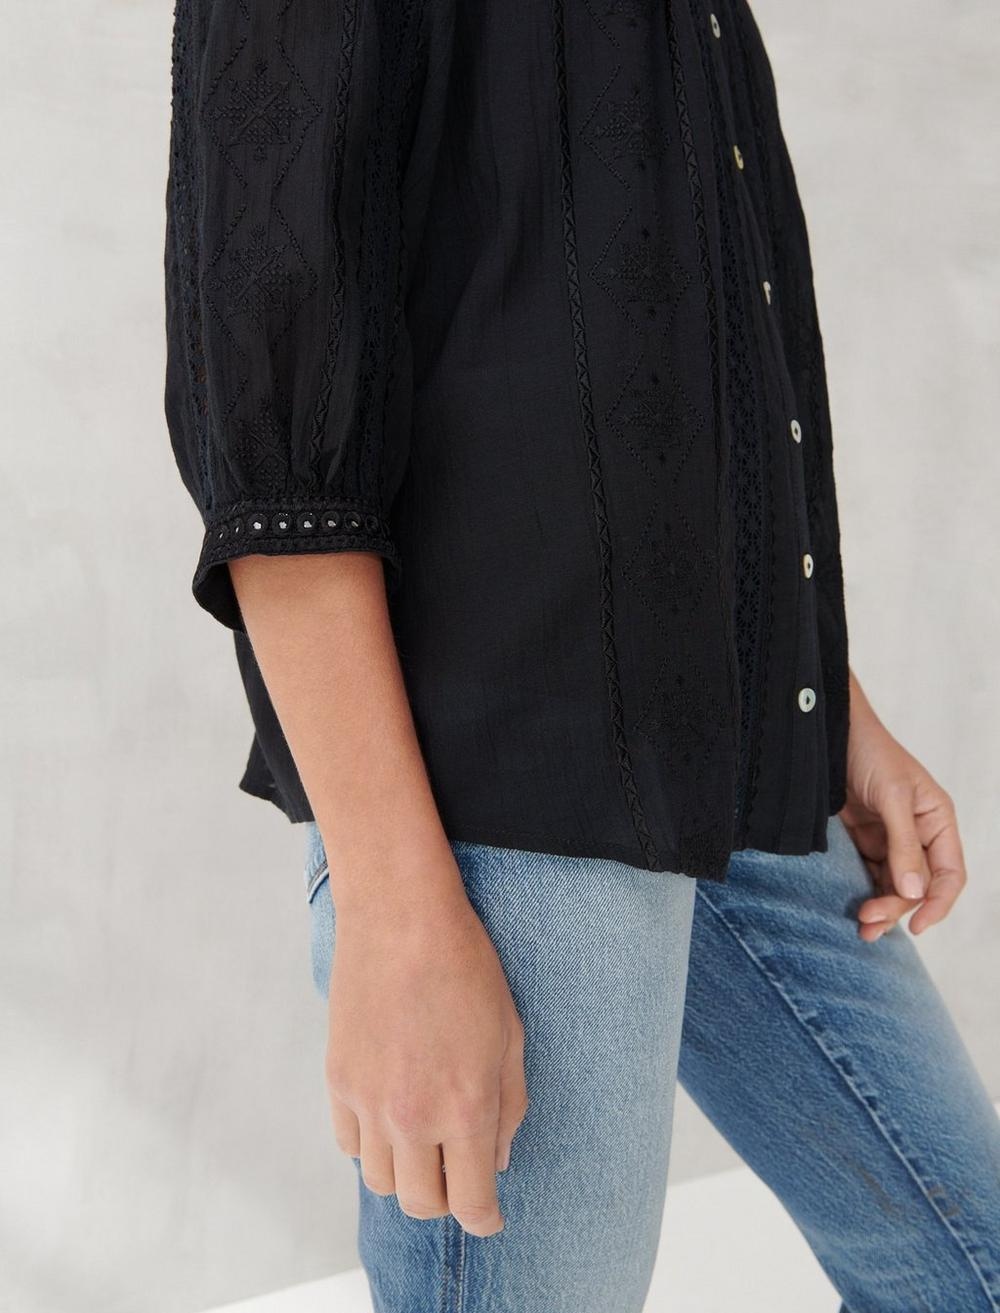 LACE INSET EMBROIDERED BUTTON TOP, image 5